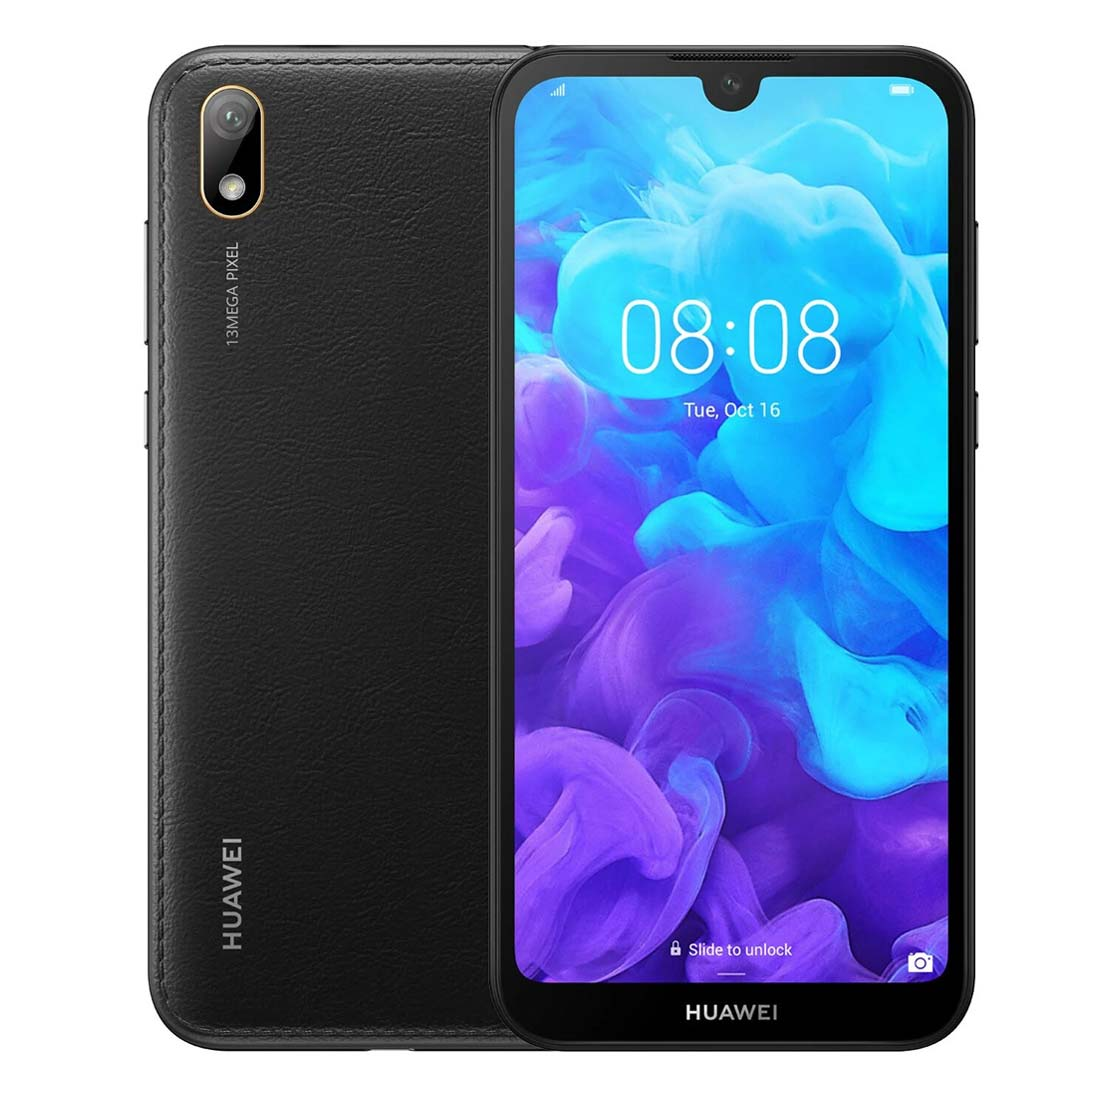 Huawei Y5 2019 (Dual SIM 4G/4G, 32GB/2GB, Faux Leather) - Modern Black